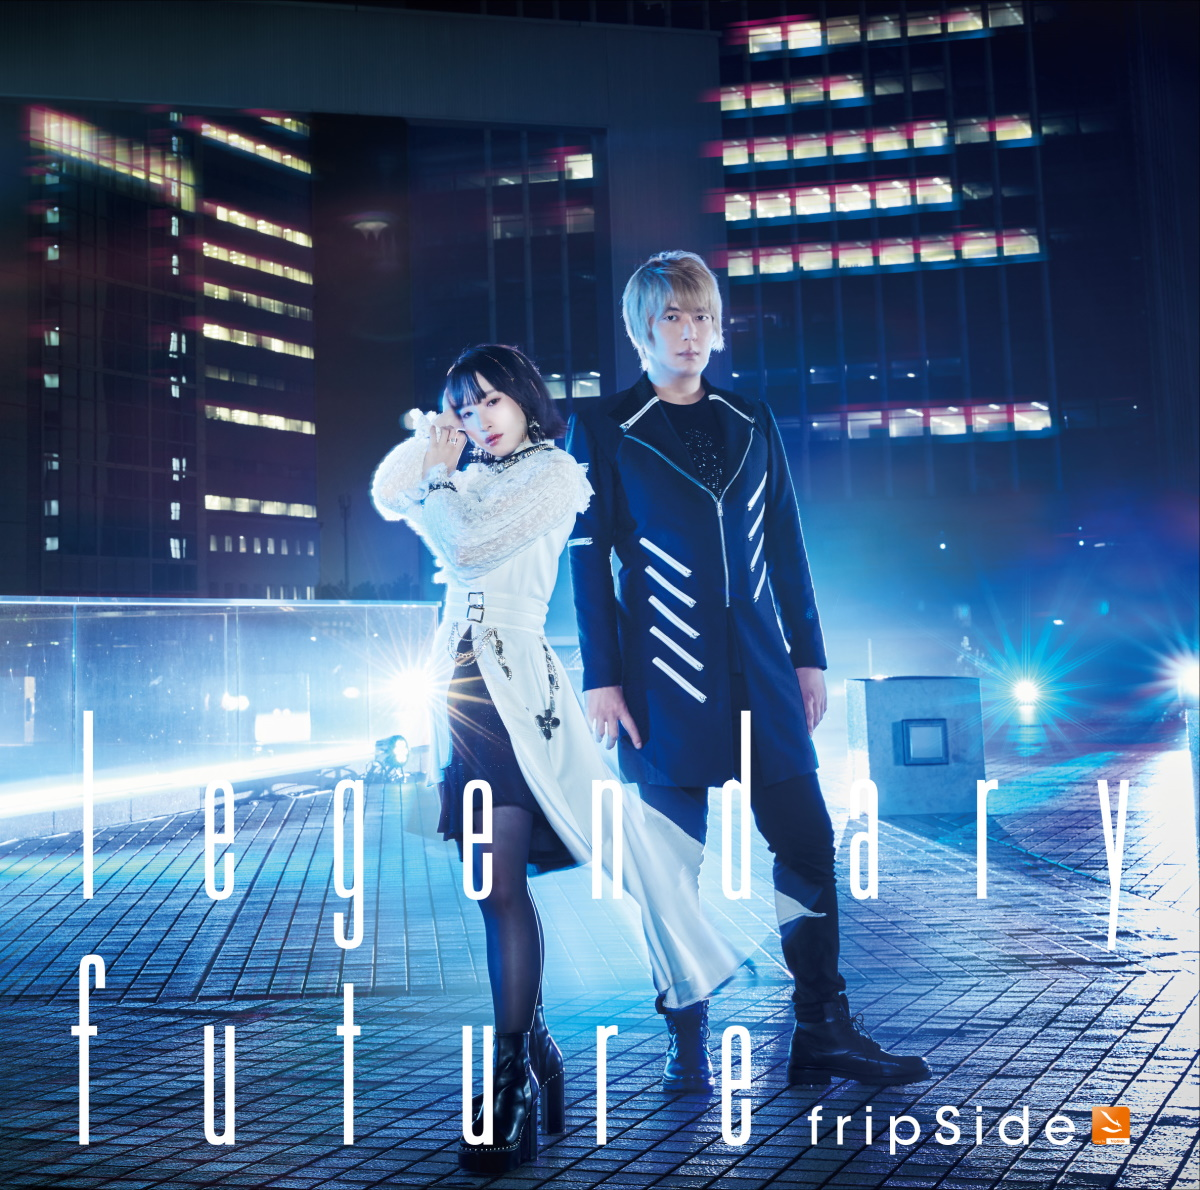 『fripSide - legendary future 歌詞』収録の『legendary future』ジャケット